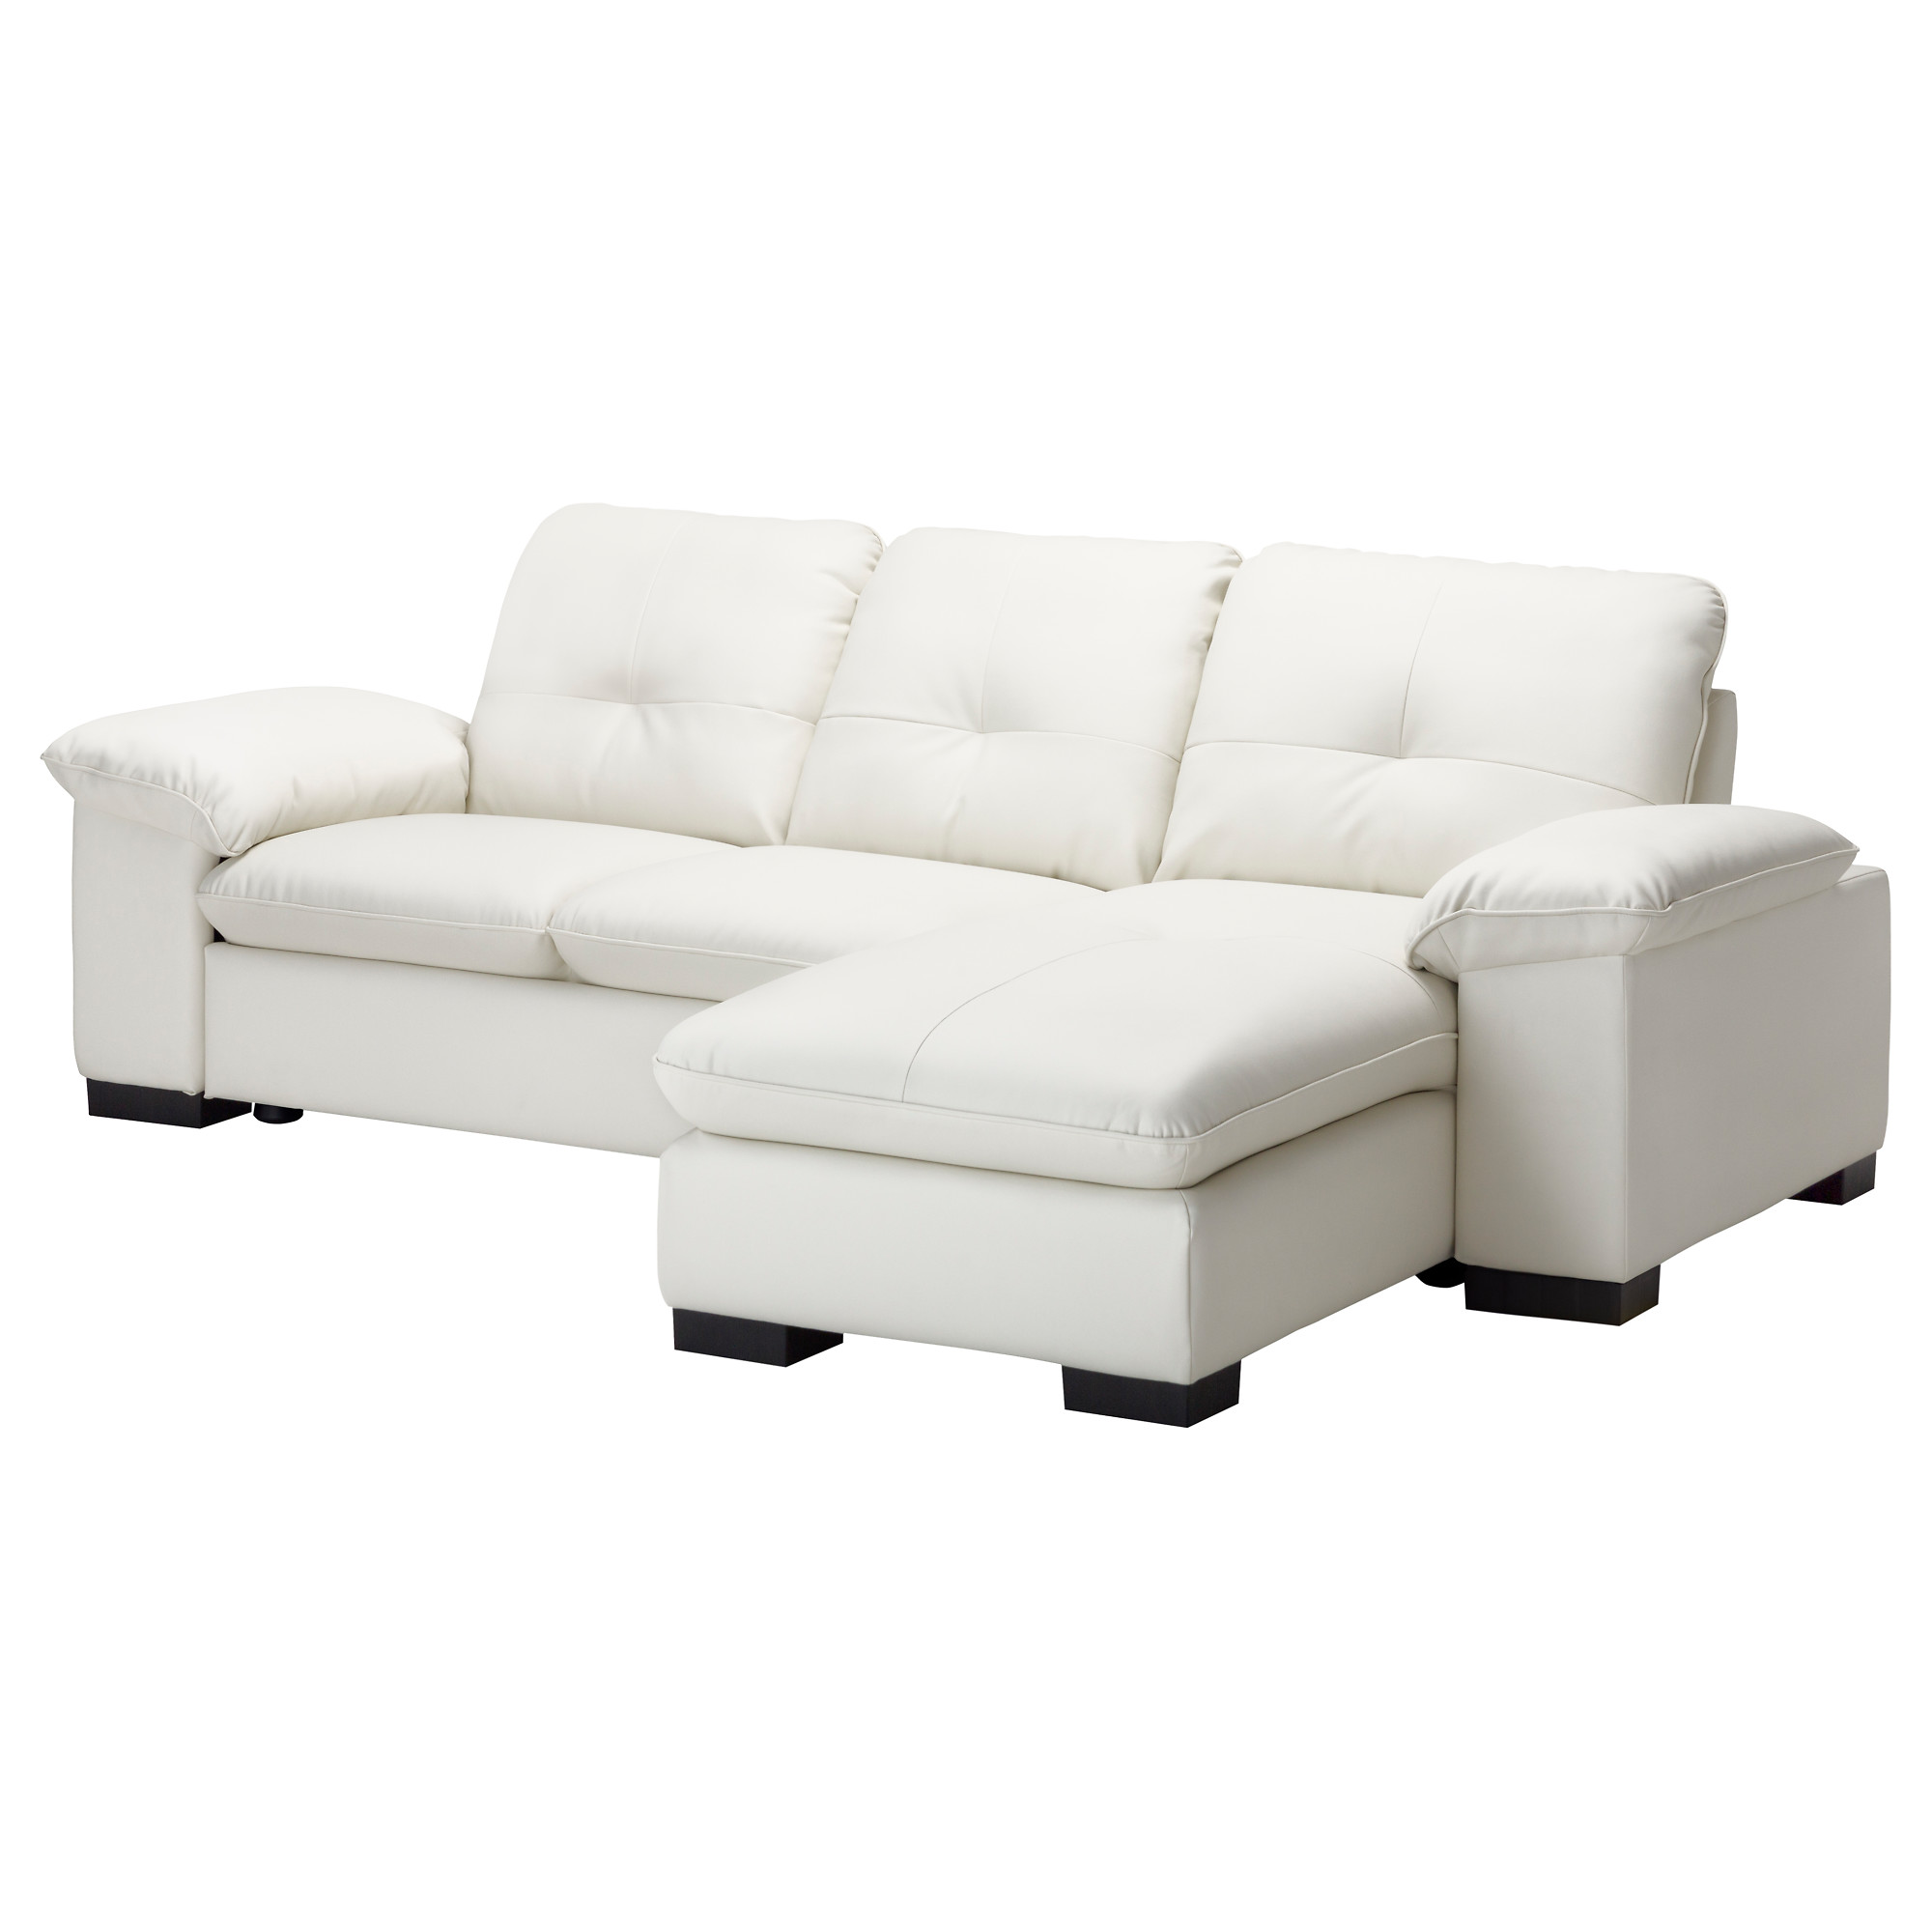 Moheda Sofa Bed | Moheda Corner Sofa-bed | Ikea Sleeper Sofa